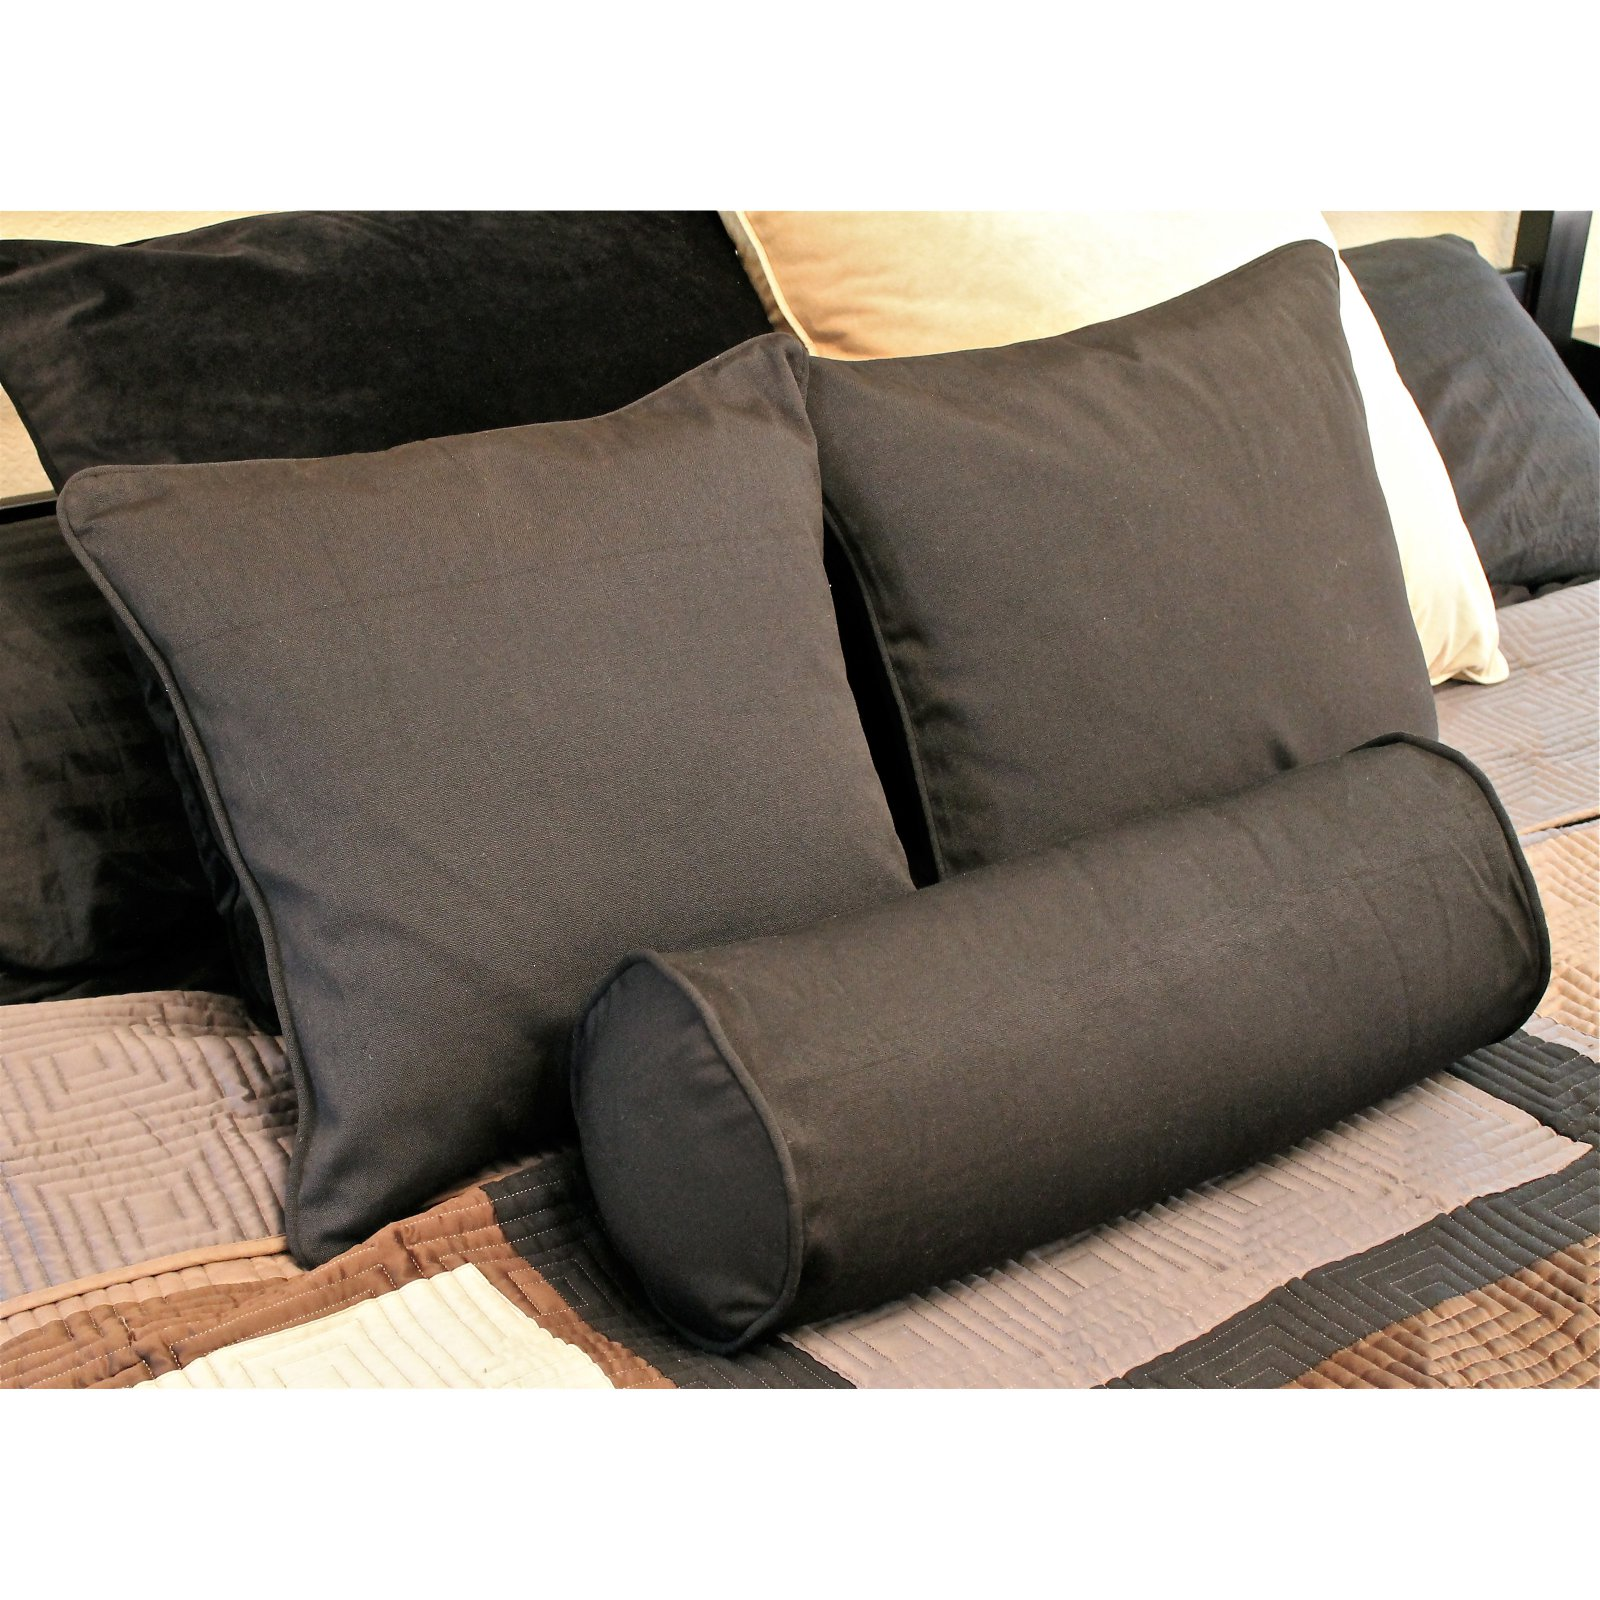 Blazing Needles Set of 3 - 18 in. Solid Pillows with Bolster Package